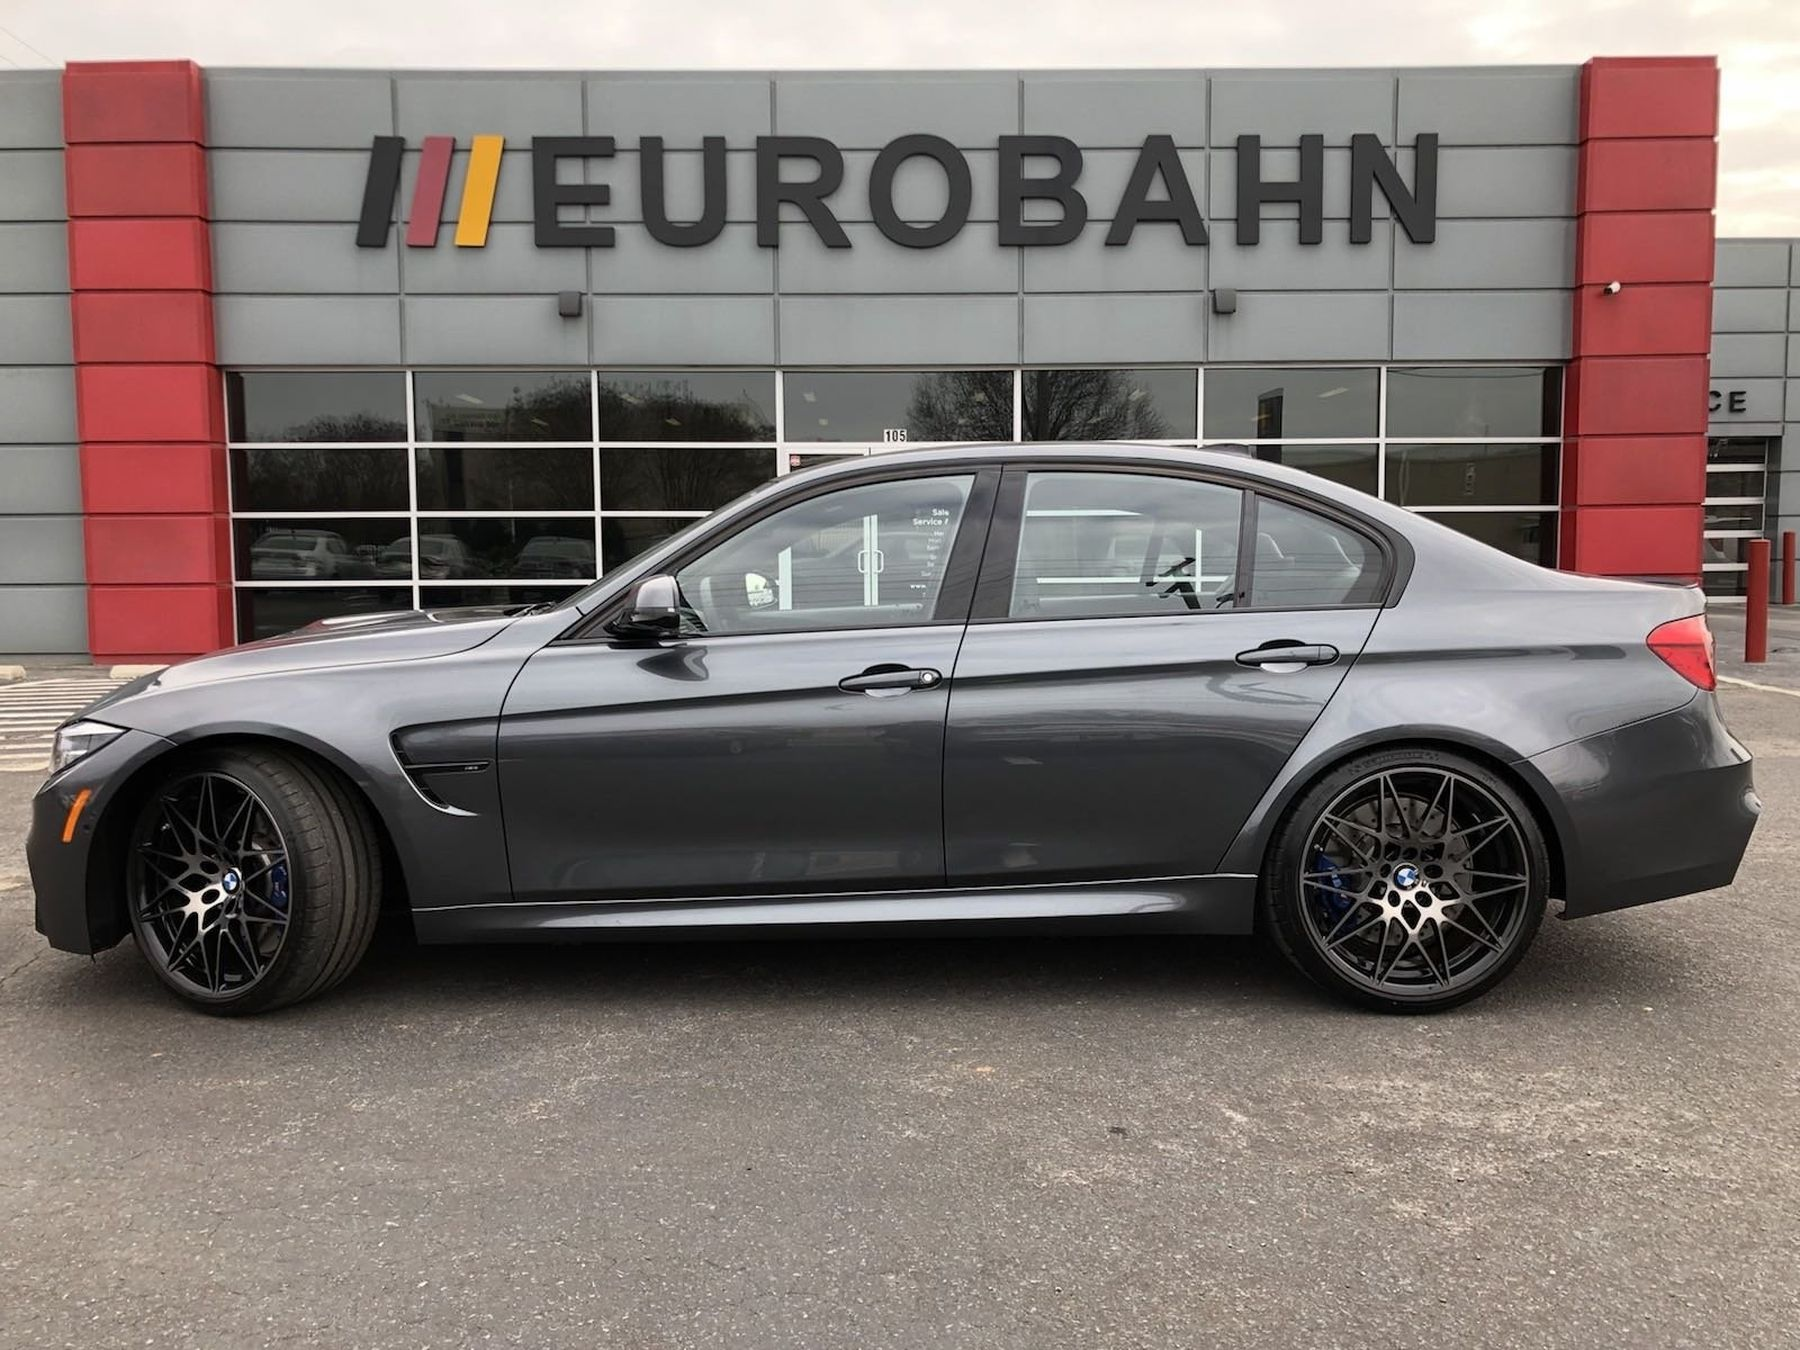 Used One Owner 2018 Bmw M3 Competition Package In Greensboro Nc Eurobahn Bmw Mini Mercedes Benz Audi Of Greensboro Bmw Bmw M3 Mercedes Benz